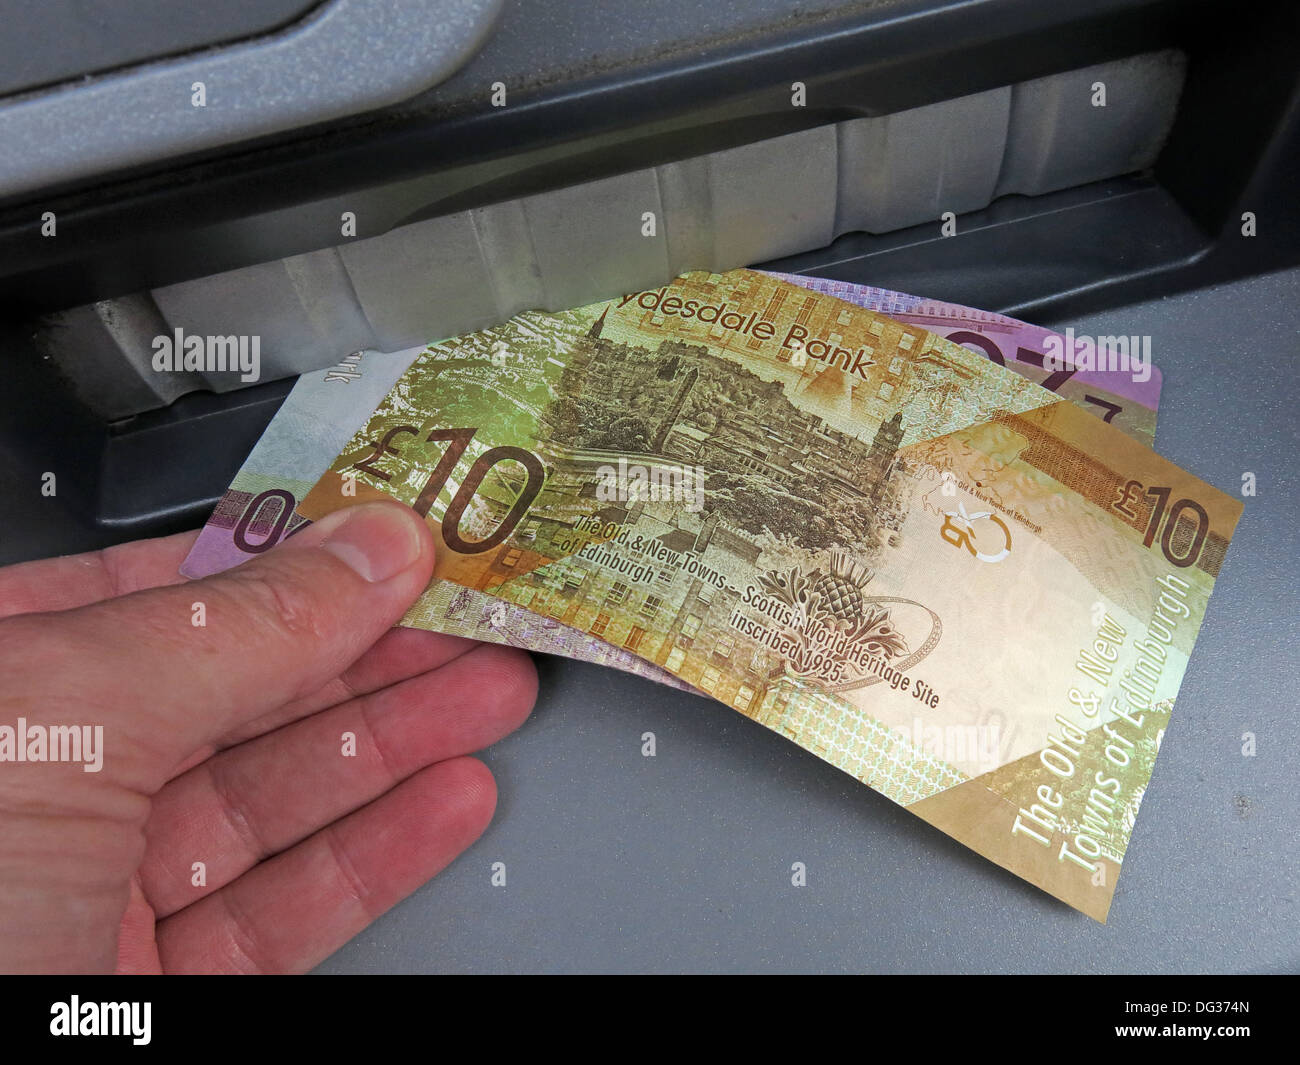 Clydesdale,bank,ATM,cash,dispensing,machine,Scotland,UK,scottish,independance,independence,soveregn,nation,SNP,national,party,money,monetary,union,issues,problems,problem,finance,financial,vote,voting,20,10,pounds,ten,twenty,note,banknotes,official,currency,gotonysmith legal tender retail,finger,fingers,Buy Pictures of,Buy Images Of